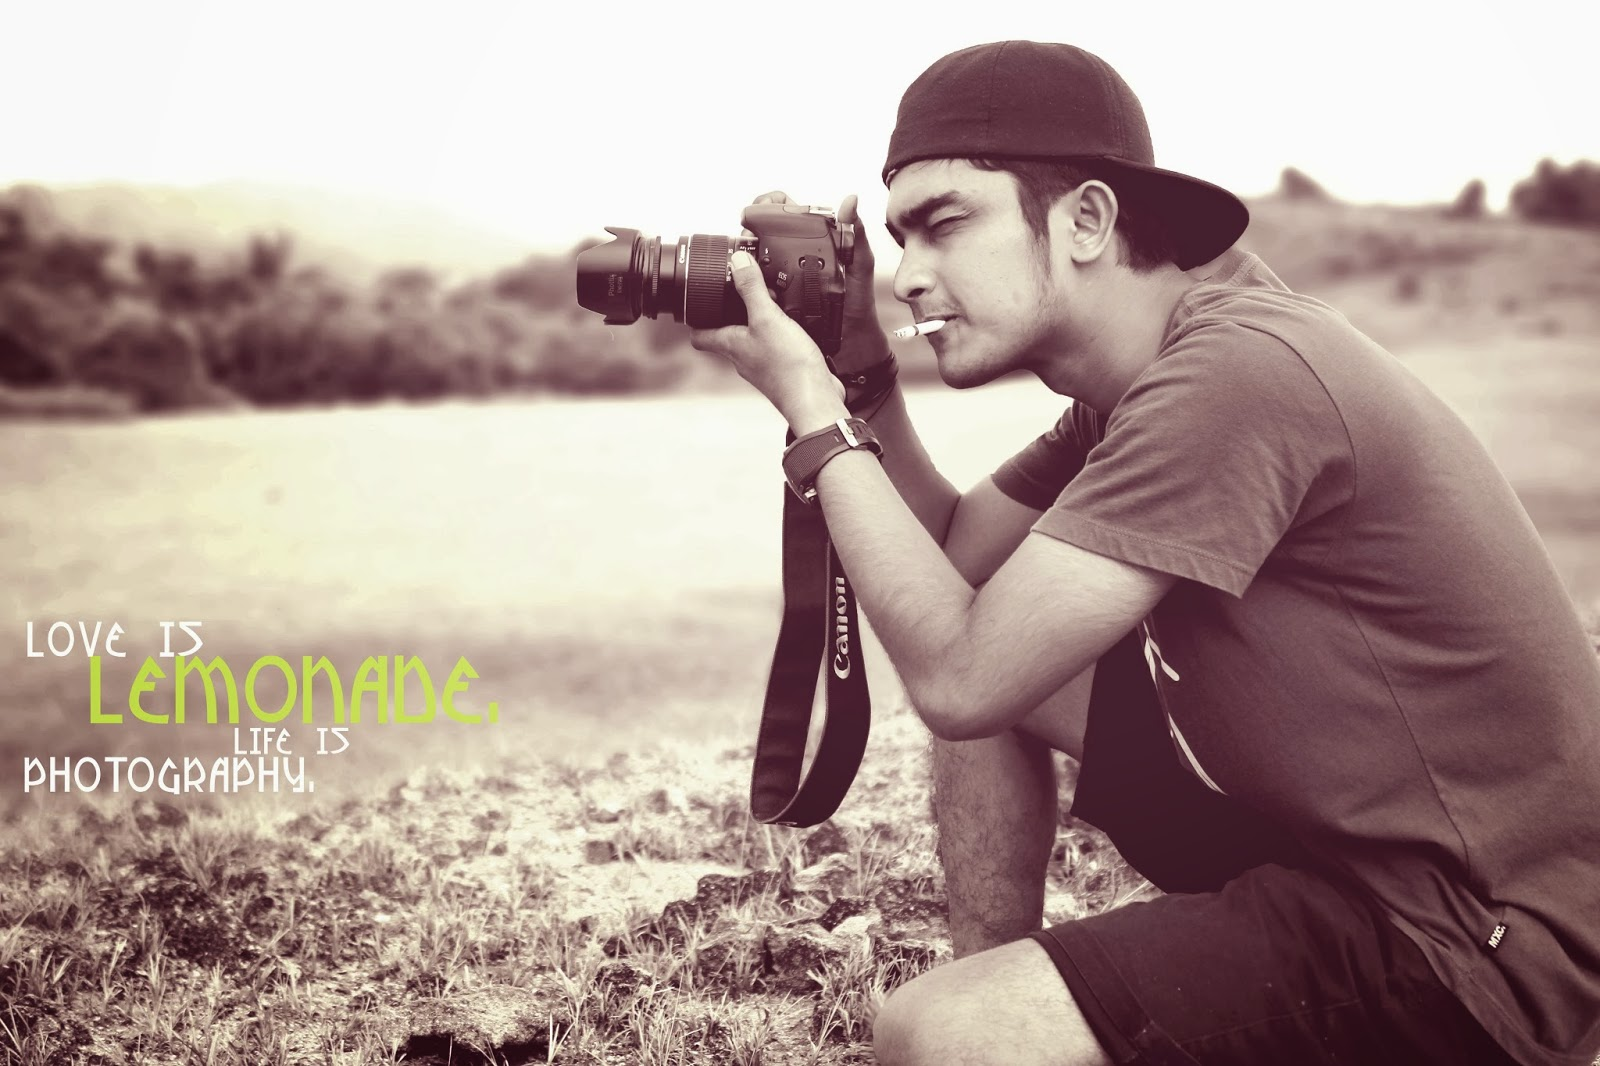 http://lemonade-photography.blogspot.com/2014/03/bermain-dengan-tone-warna-photoscape.html